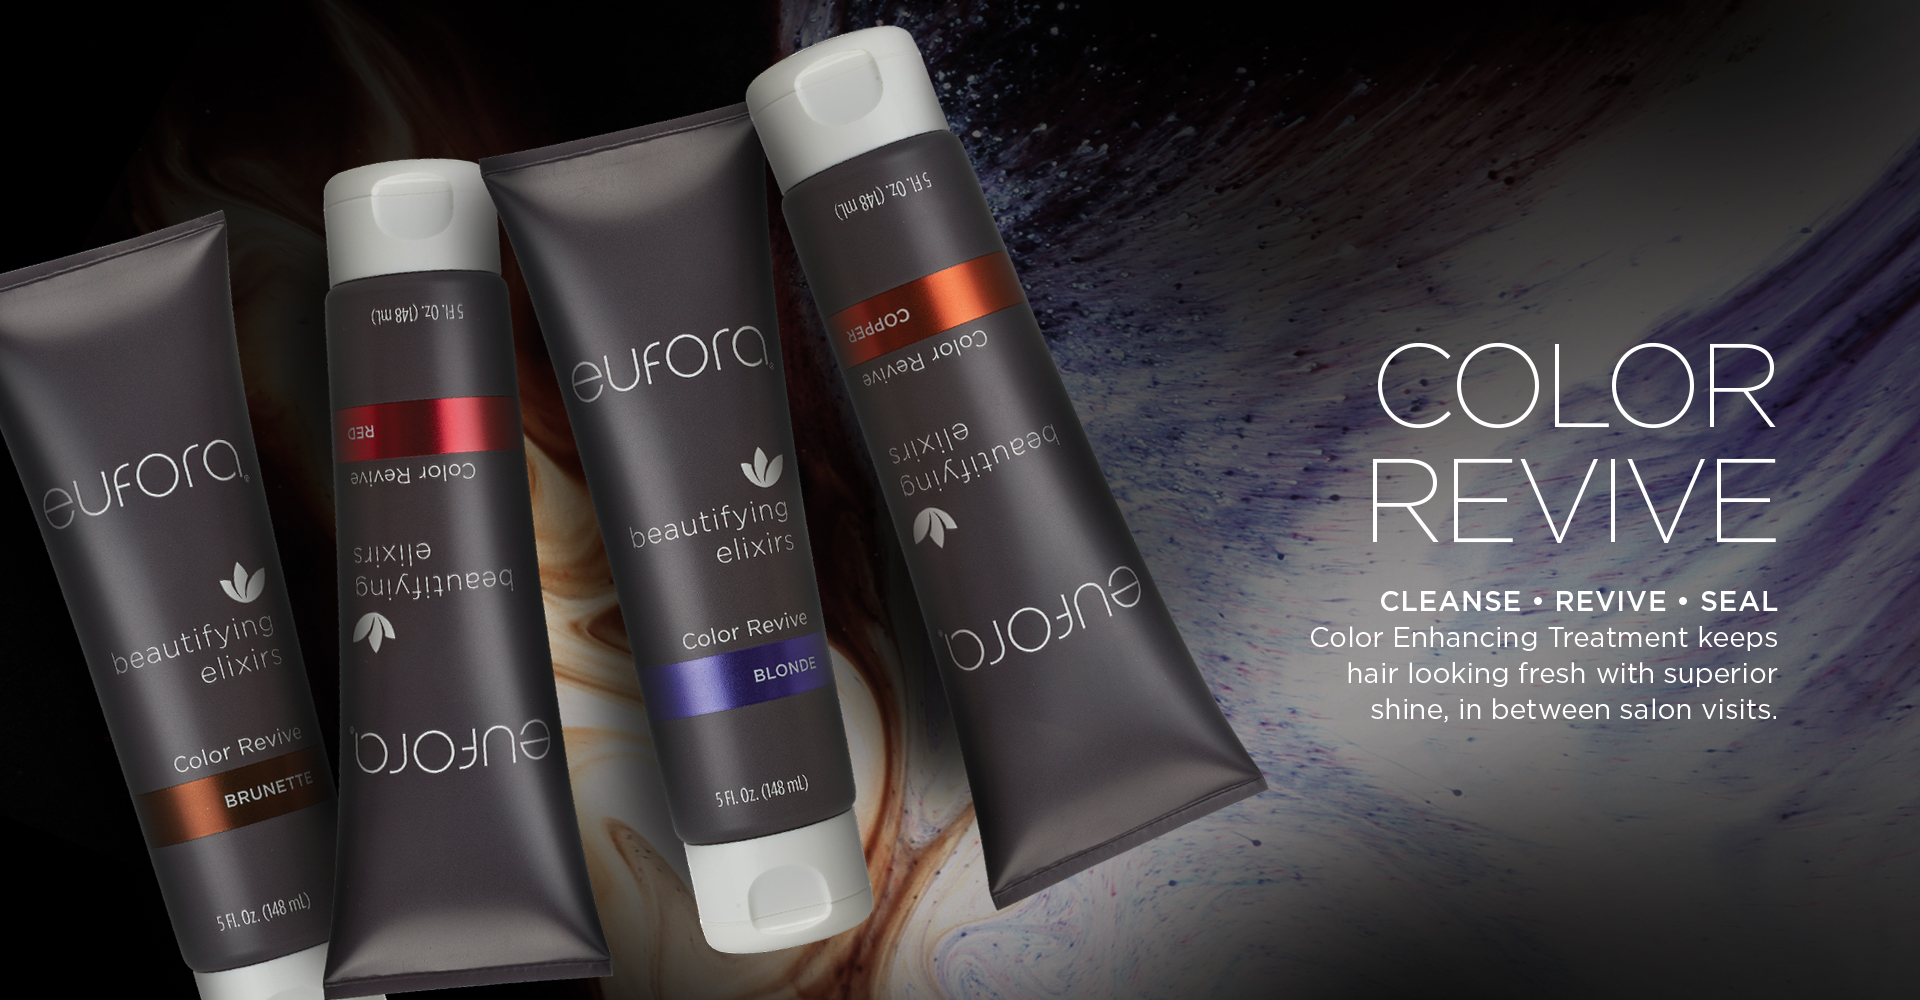 Eufora Color Revive